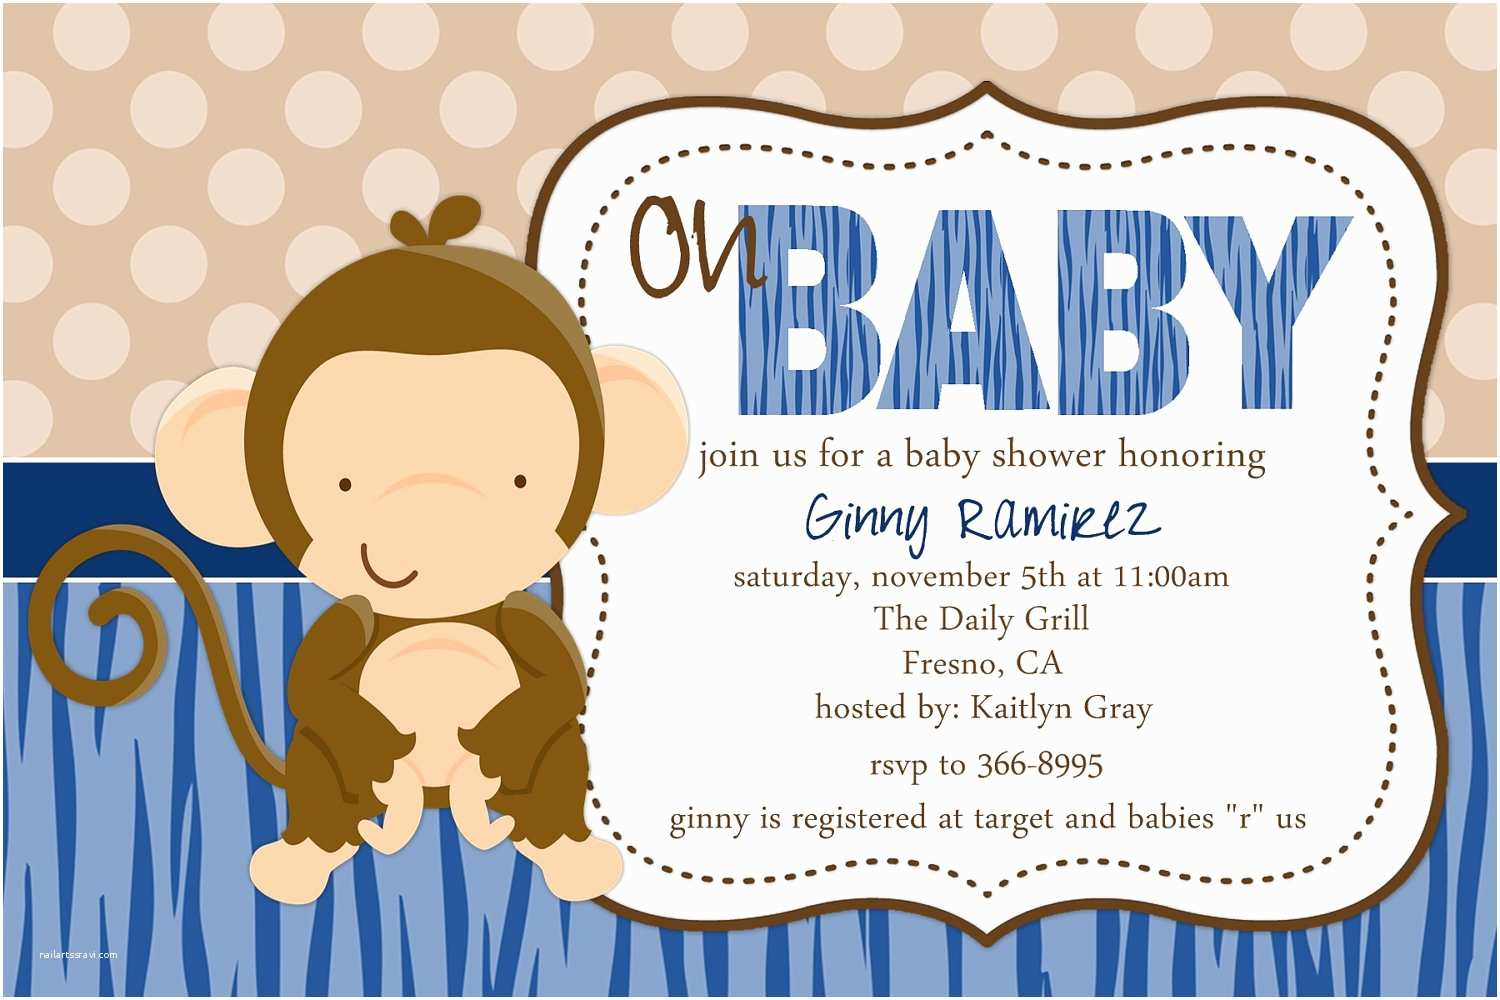 Free Printable Monkey Baby Shower Invitations Design Monkey Baby Shower Invitations Free Printable